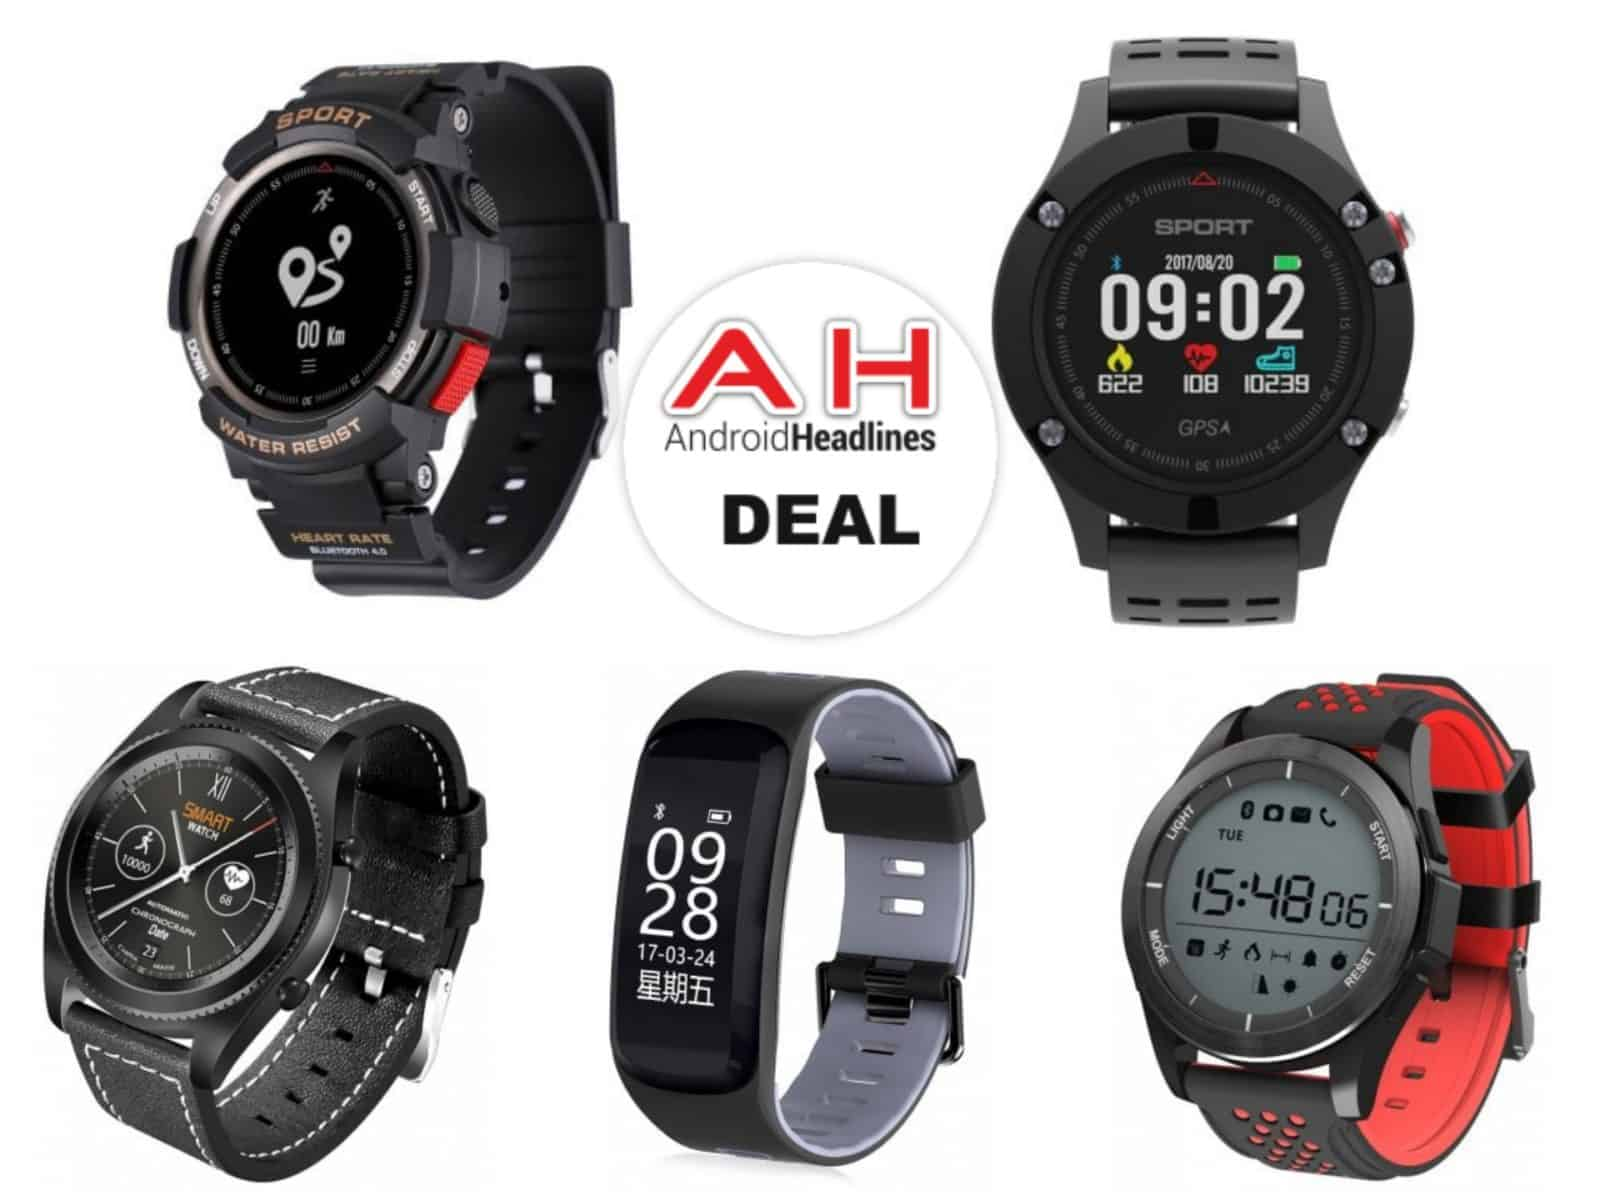 and shocks lastly sport also can is withstand multiple dust such o so running features launched rugged for of it outdoor sports the no kind as smartwatch modes rug water